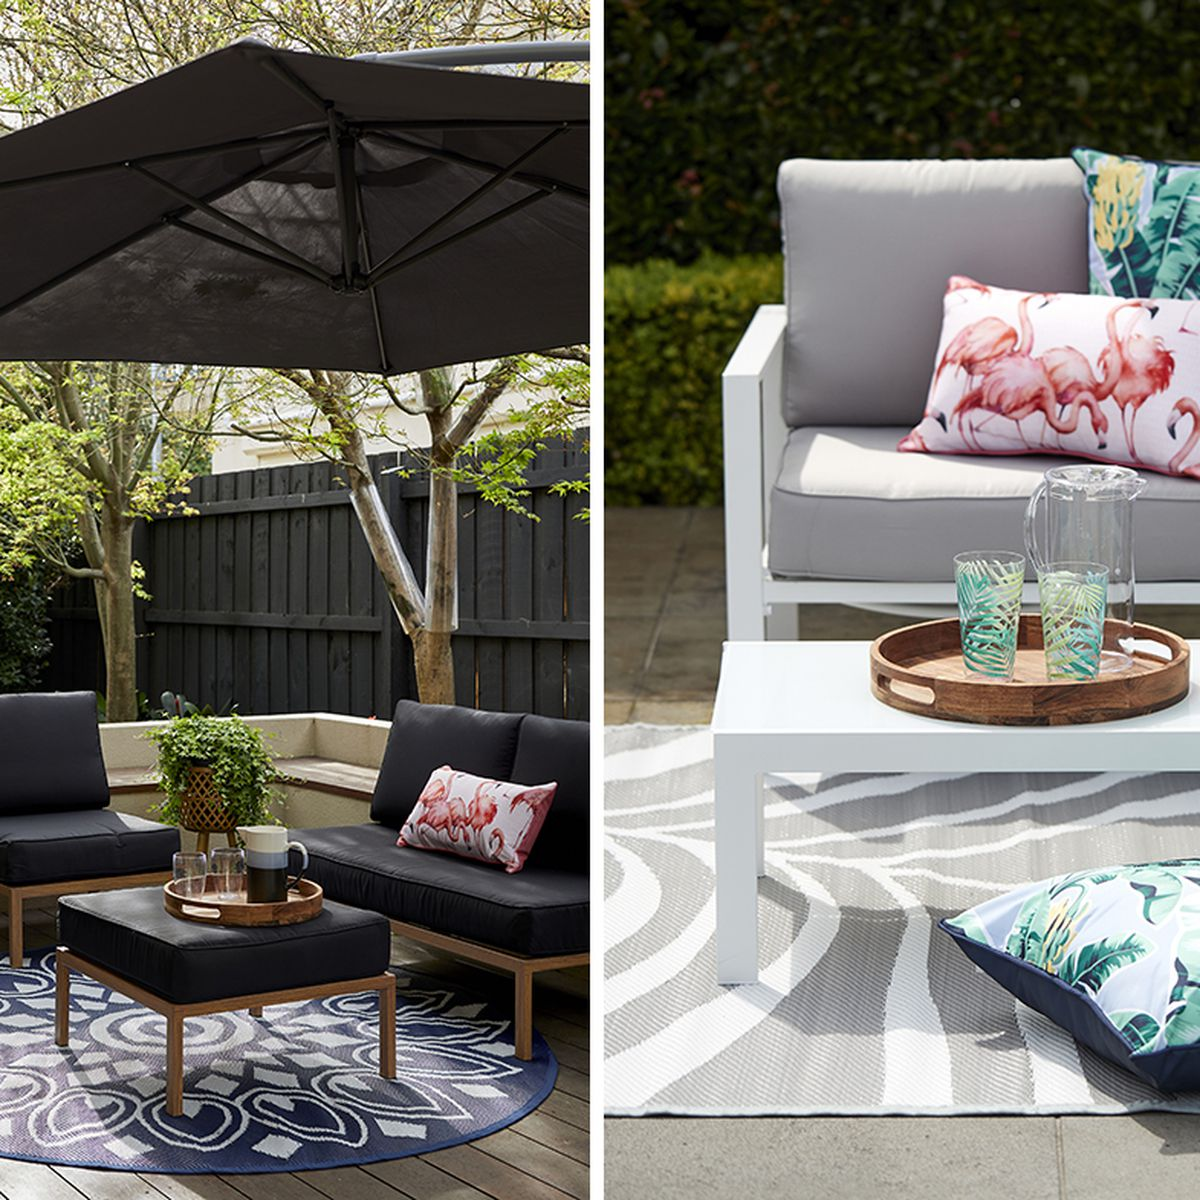 Kmart releases new affordable outdoor furniture range exclusively